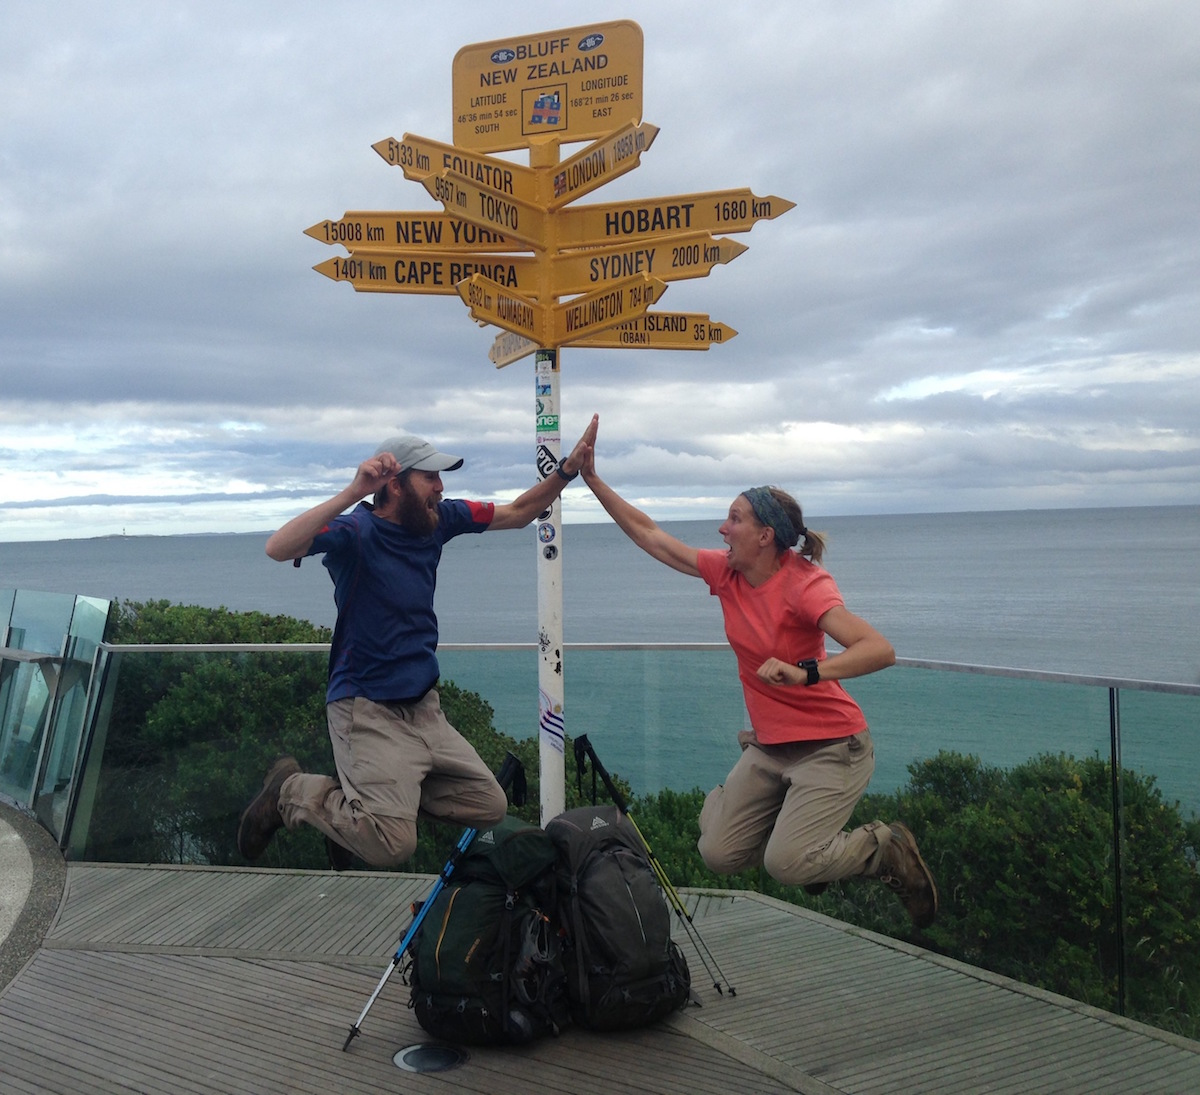 We really splurged on our thru hike across New Zealand because … well, it's New Zealand!